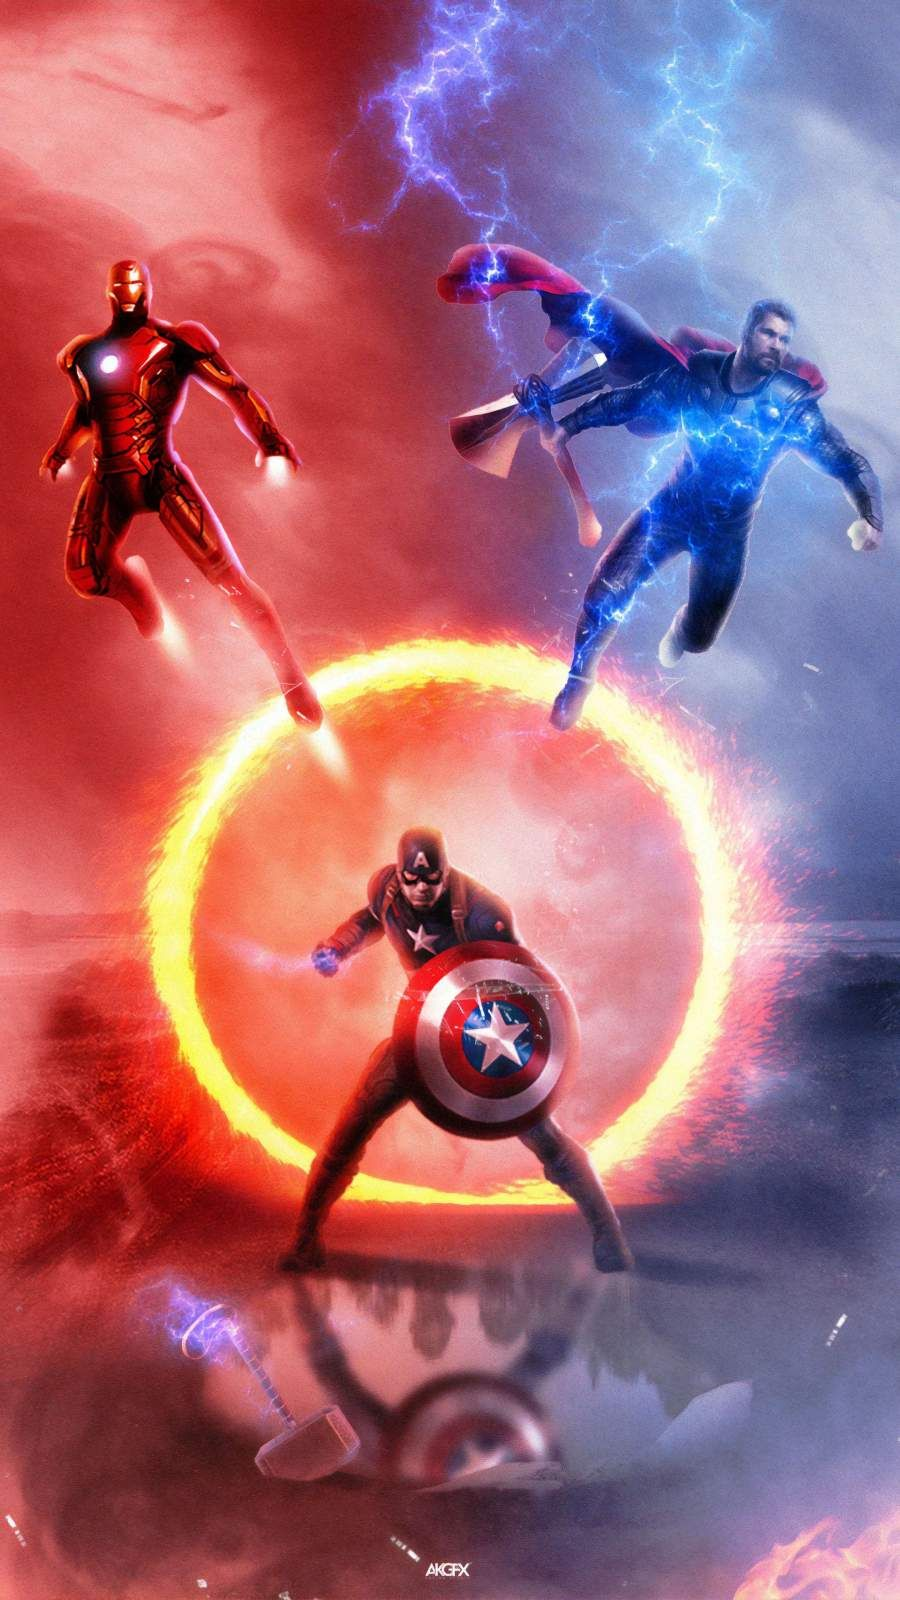 Avengers Endgame Trinity iPhone Wallpaper   iPhone Wallpapers 900x1600